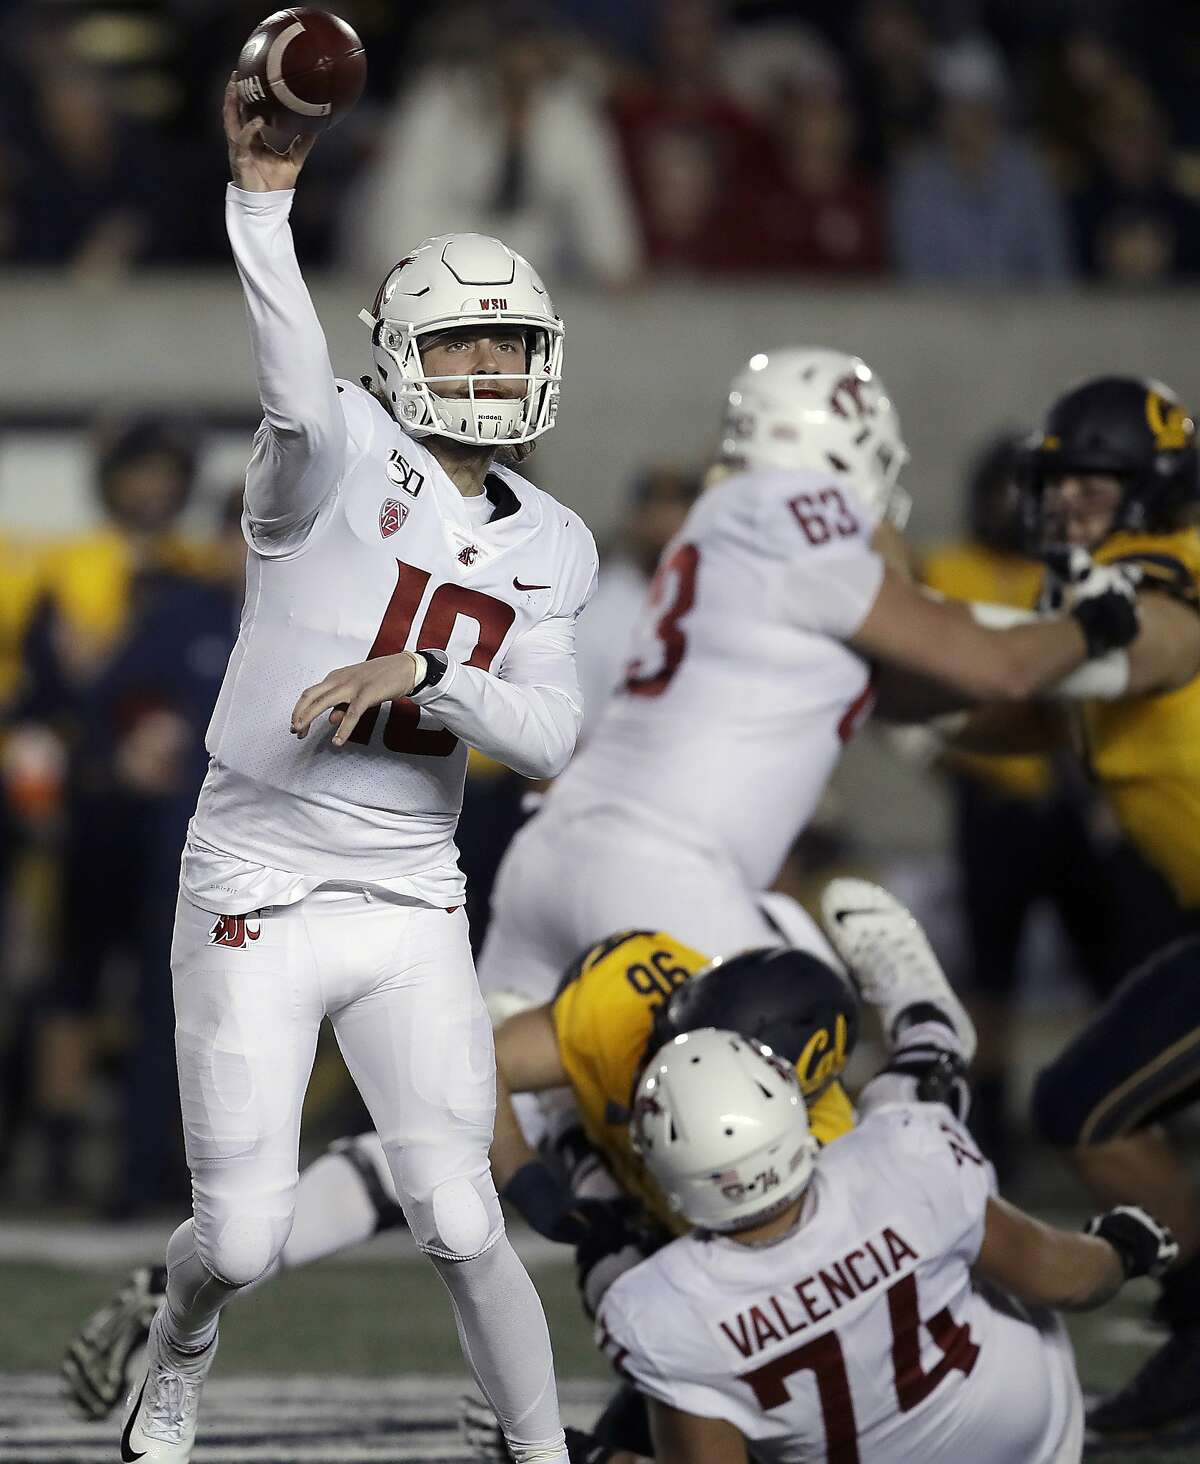 The analytics site Pro Football Focus ranked the Seattle Seahawks addition of former Washington state quarterback Anthony Gordon as the second-best undrafted rookie free agent signing of the 2020 class.